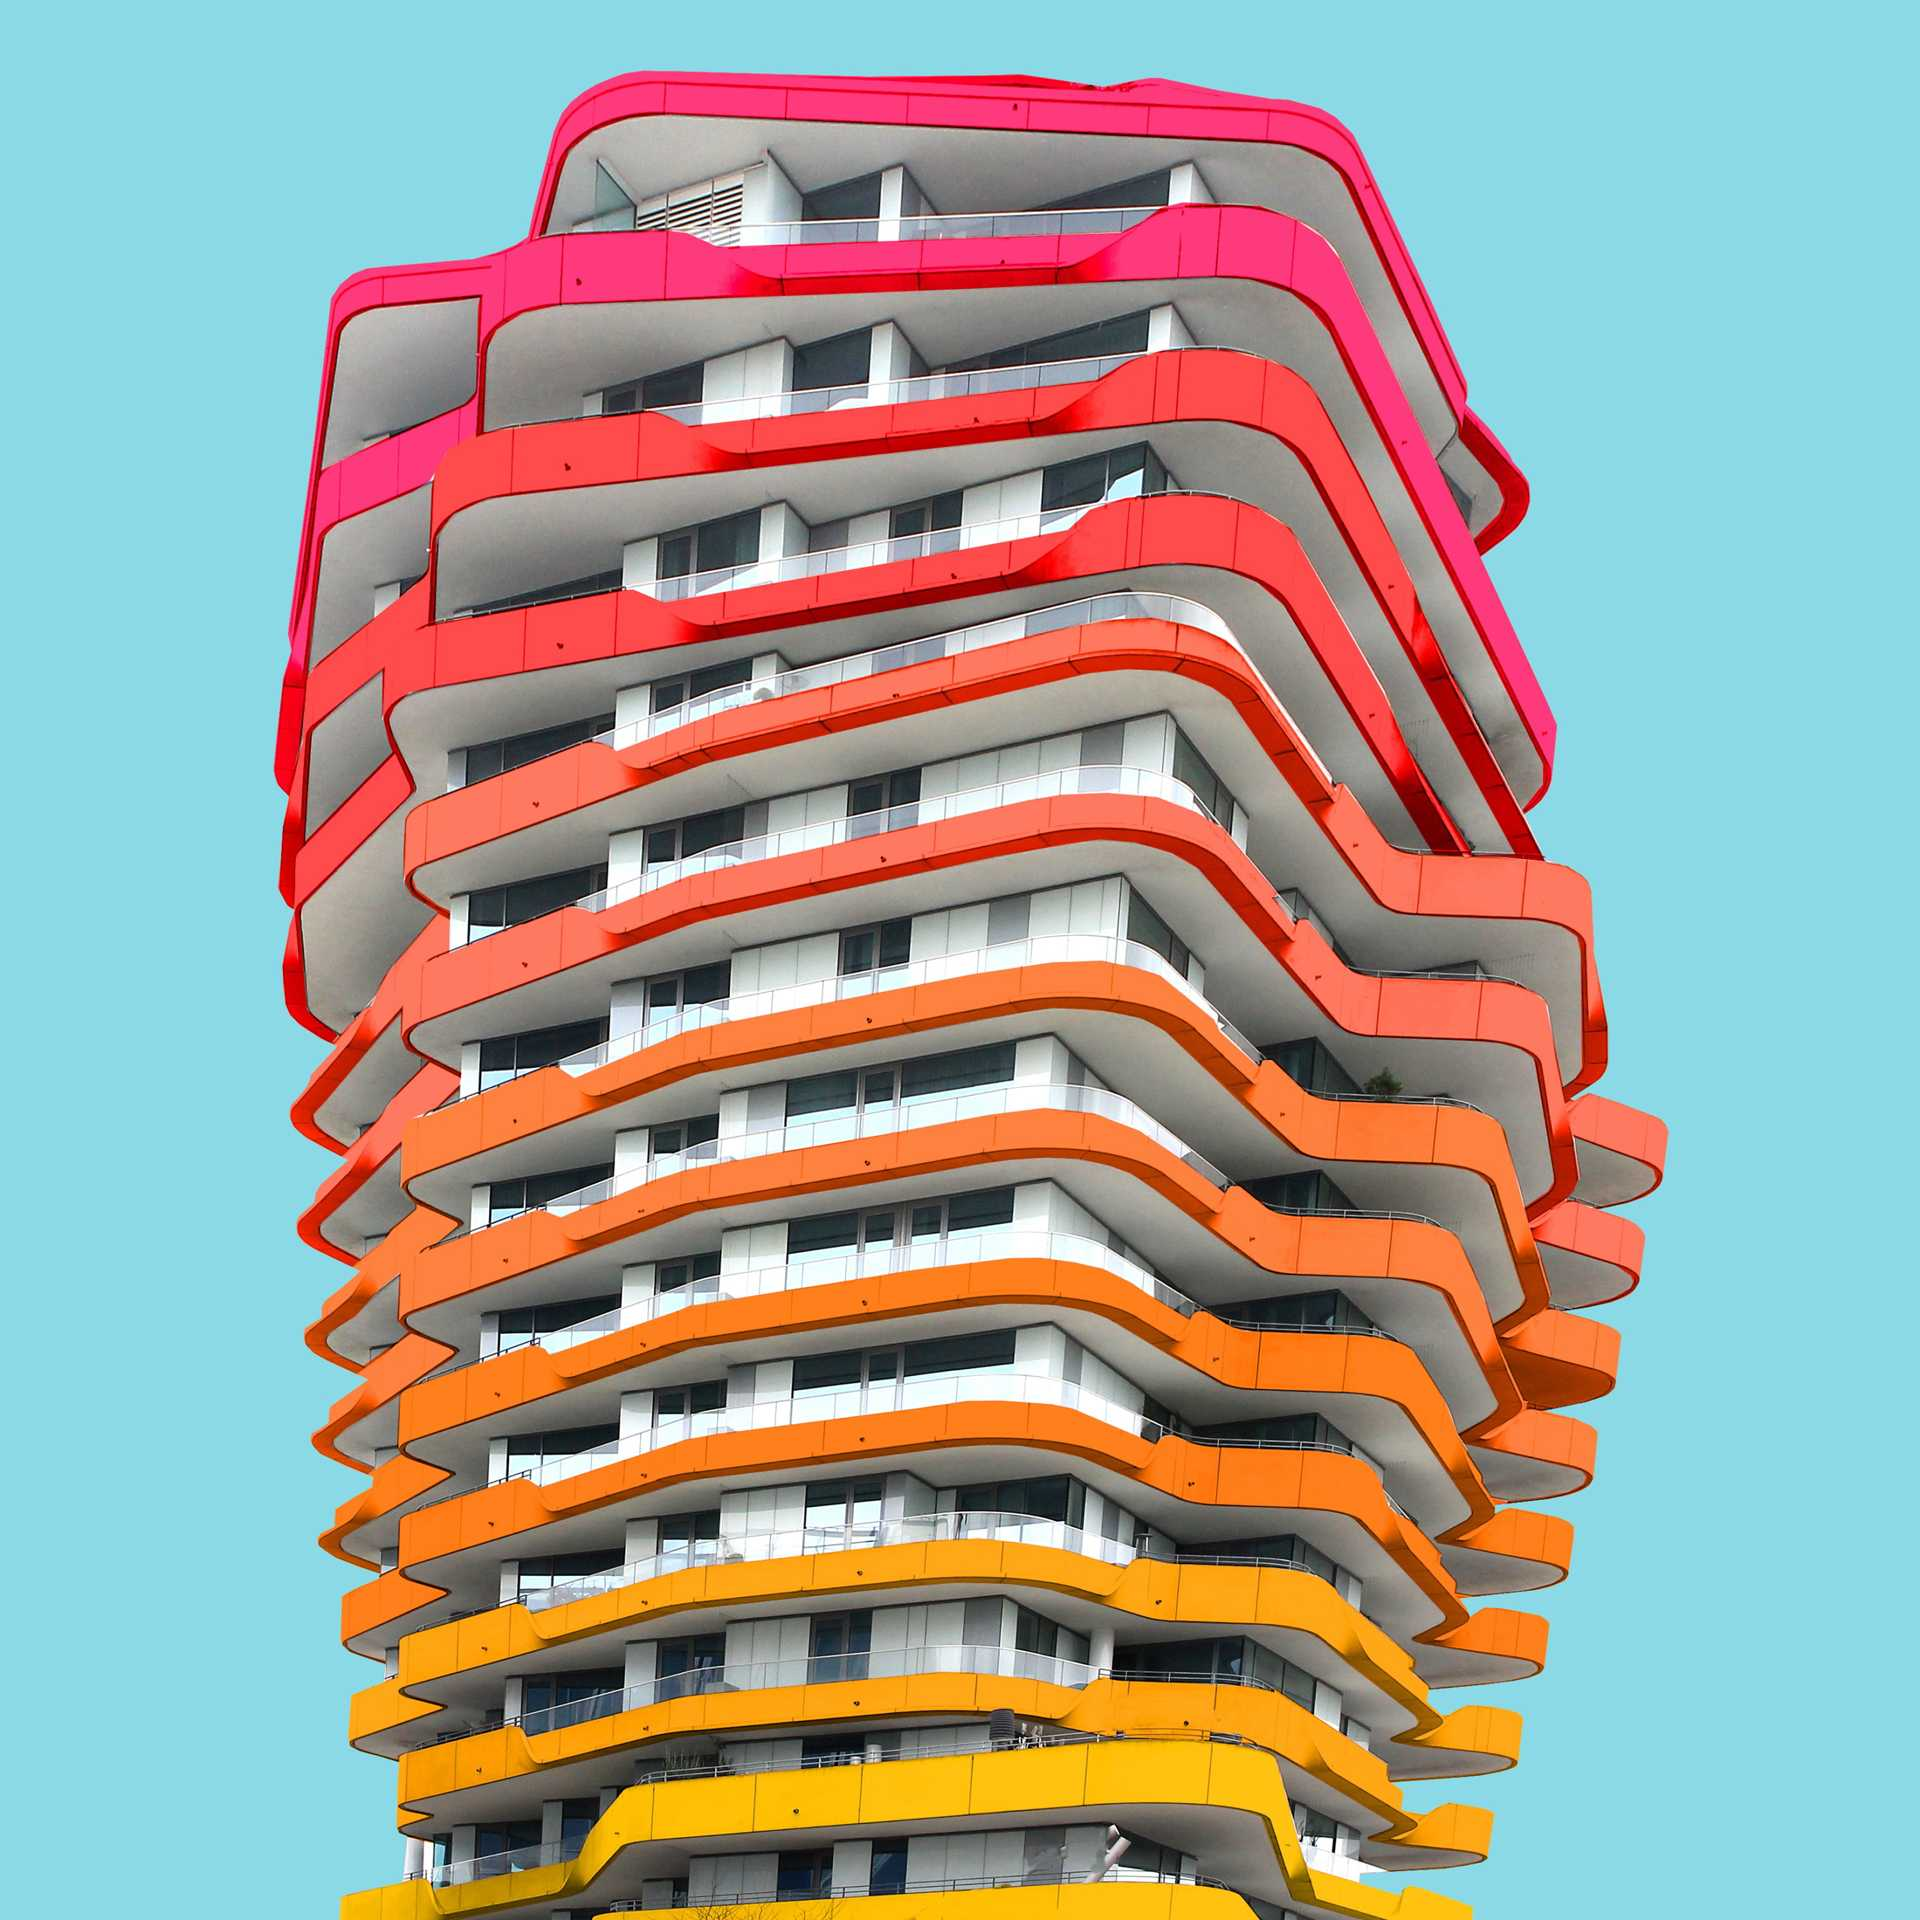 A Colorful Makeover of Architecture  - 29 5 43